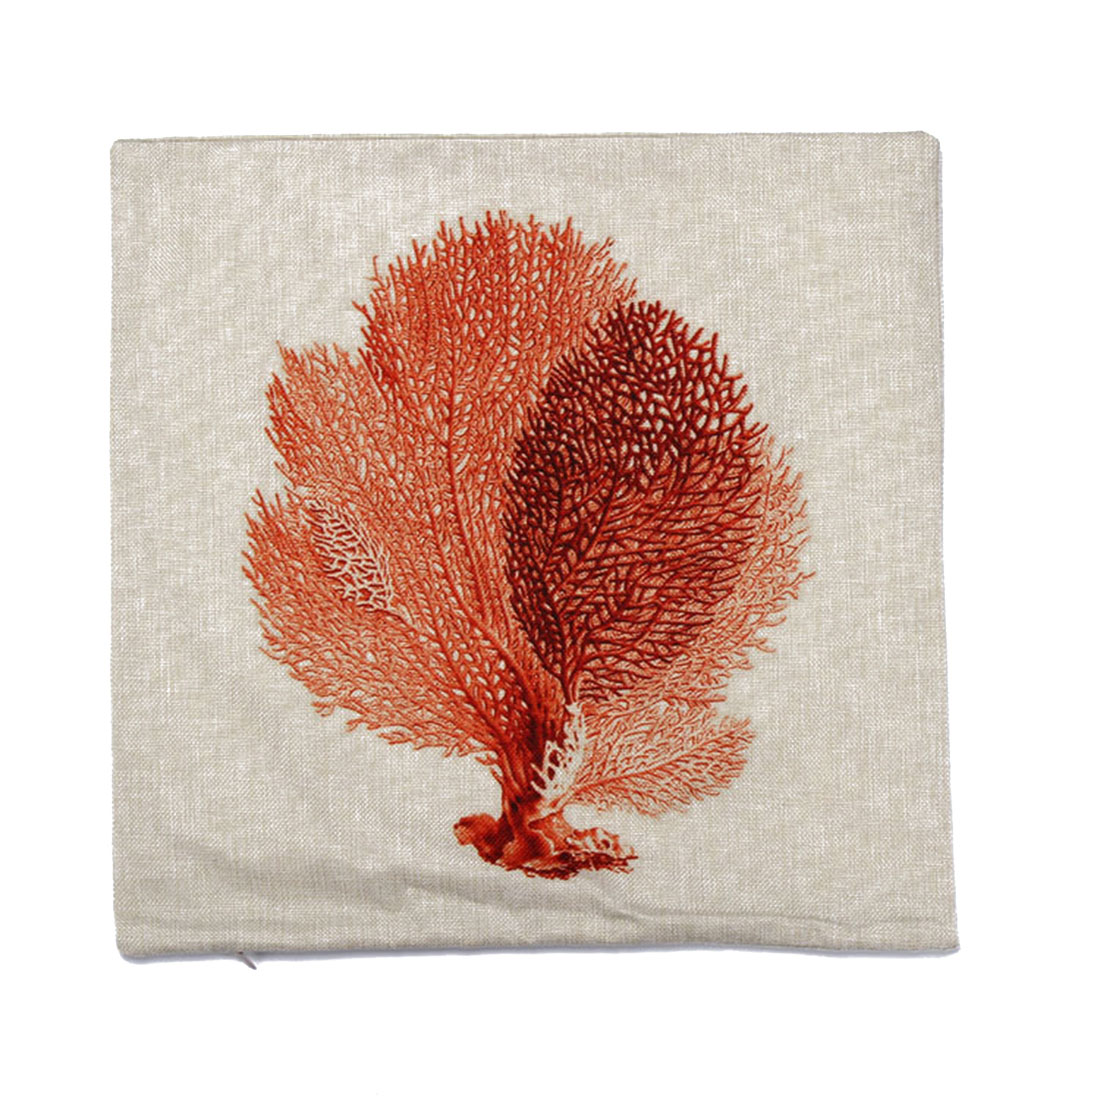 Piccocasa Linen Coral Pattern Square Shaped Cushion Cover 45 x 45cm